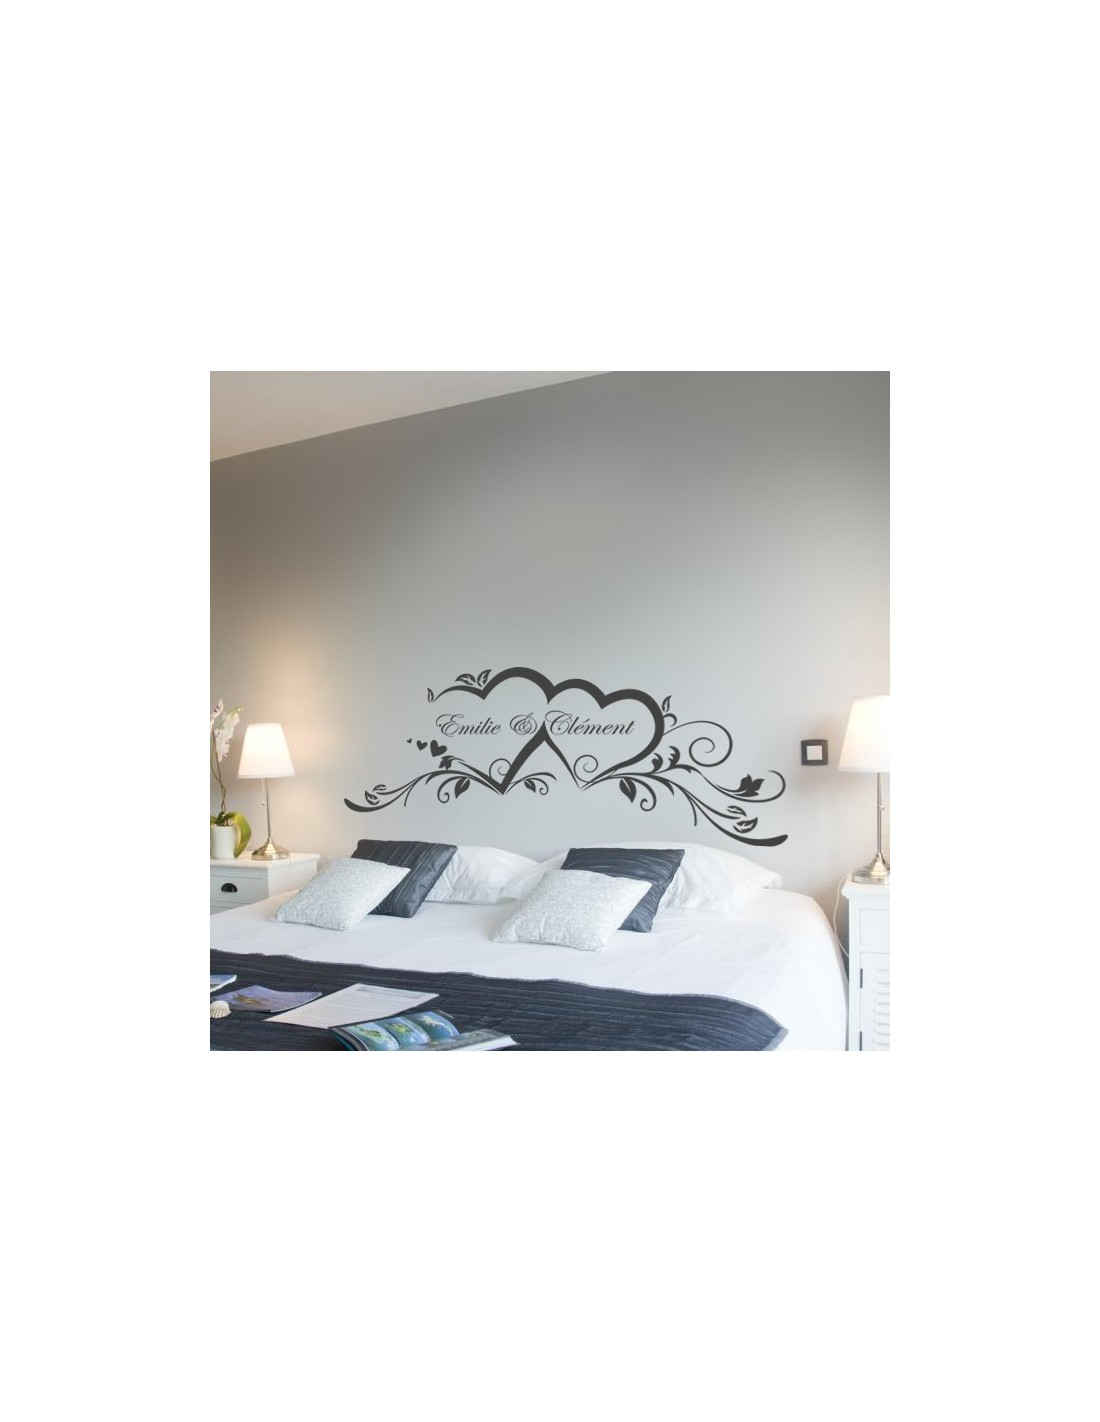 sticker pr noms personnalis s couple stickers toi moi personnalis. Black Bedroom Furniture Sets. Home Design Ideas